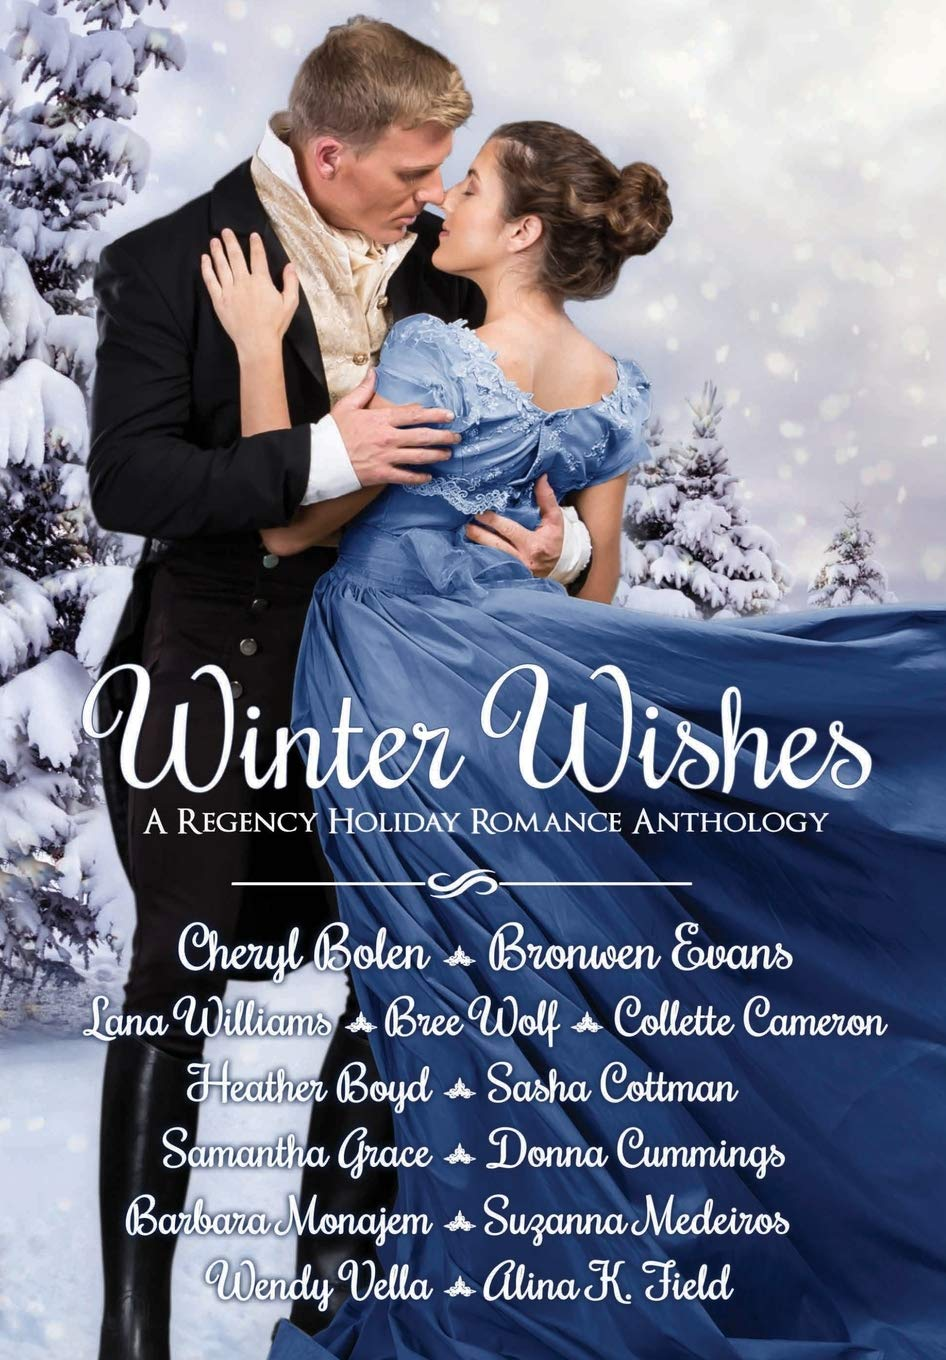 Winter Wishes: A Regency Holiday Romance Anthology by Heather Boyd